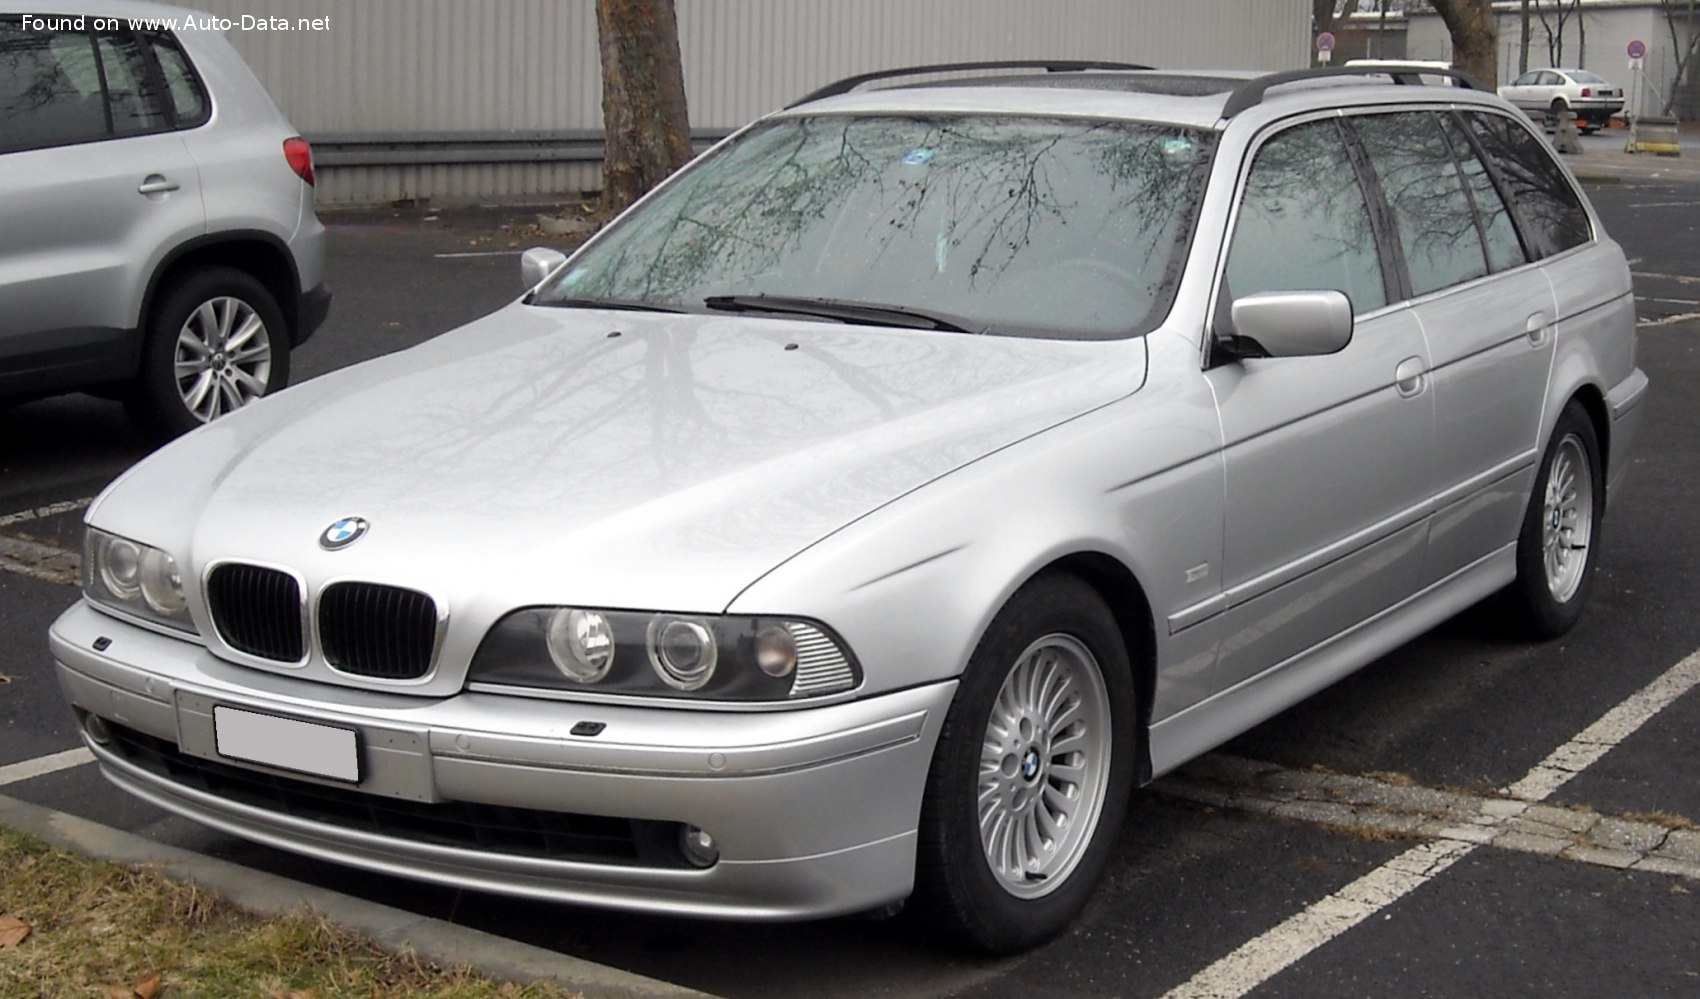 2000 Bmw 5 Series Touring E39 Facelift 2000 530d 24v 193 Hp Technical Specs Data Fuel Consumption Dimensions